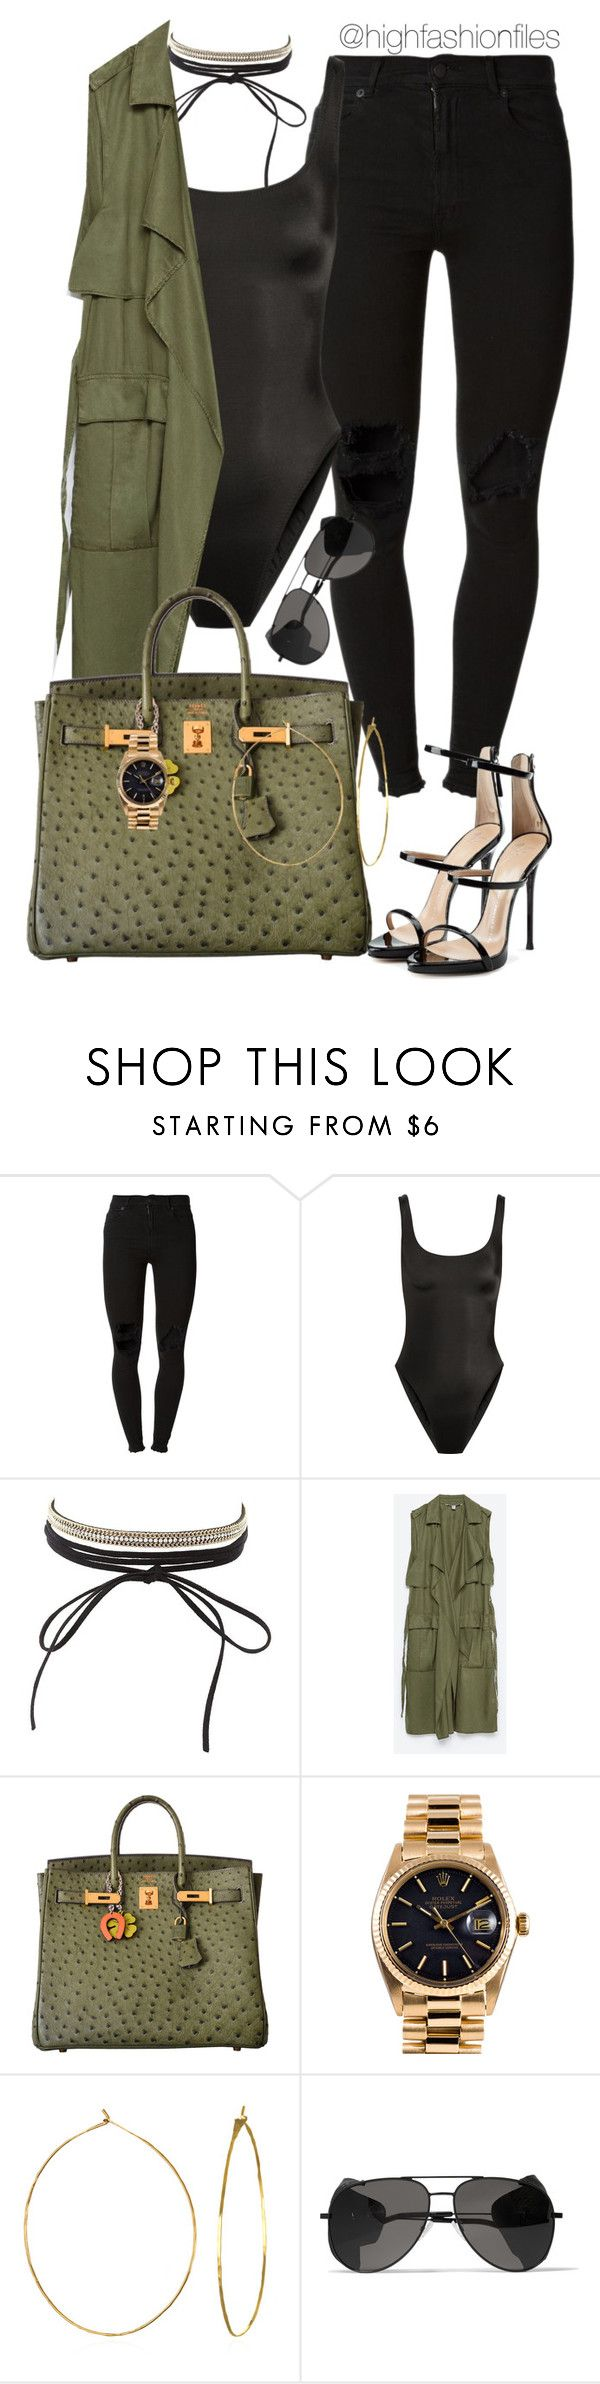 """""""Untitled #2650"""" by highfashionfiles ❤ liked on Polyvore featuring (+) PEOPLE, Norma Kamali, Charlotte Russe, Zara, Hermès, Rolex, Phyllis + Rosie, Yves Saint Laurent and Giuseppe Zanotti"""